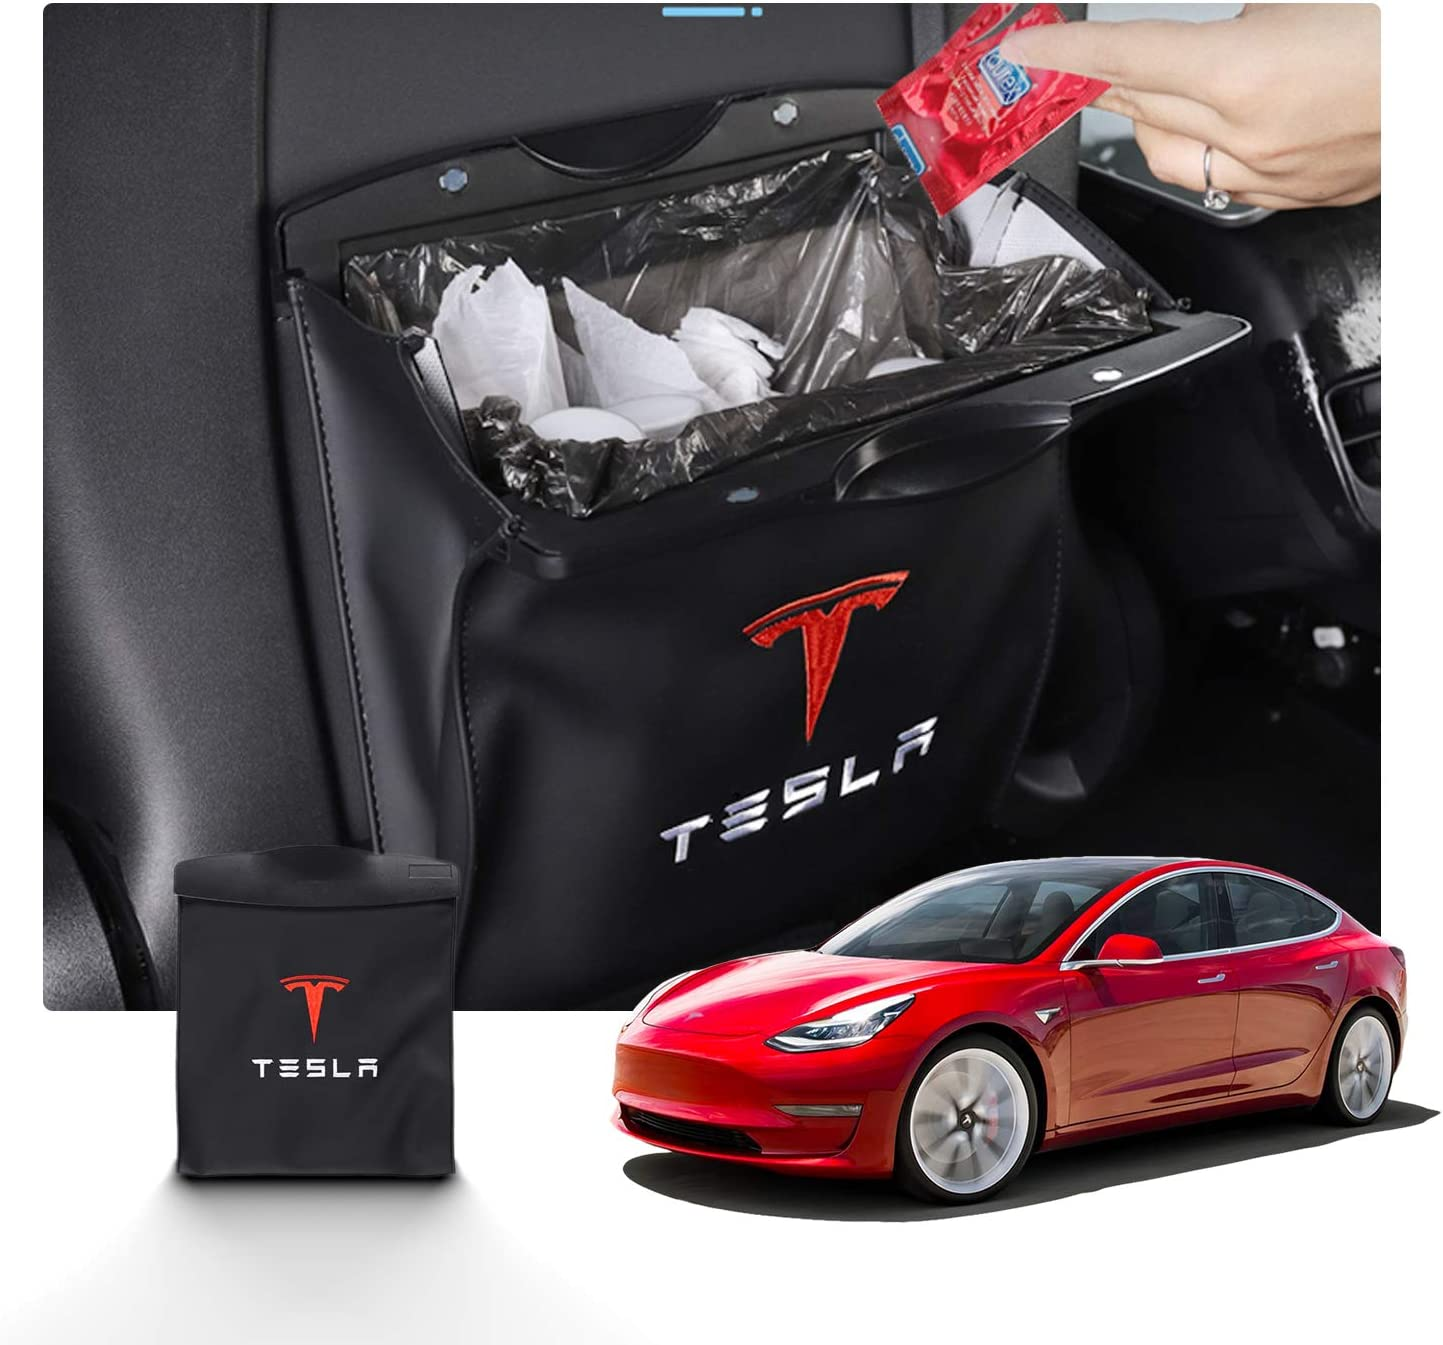 R RUIYA Car Trash Bag with Superior Leather for Tesla Model 3 Hanging and Magnet Closure Garbage Can and Storage Bin Pockets